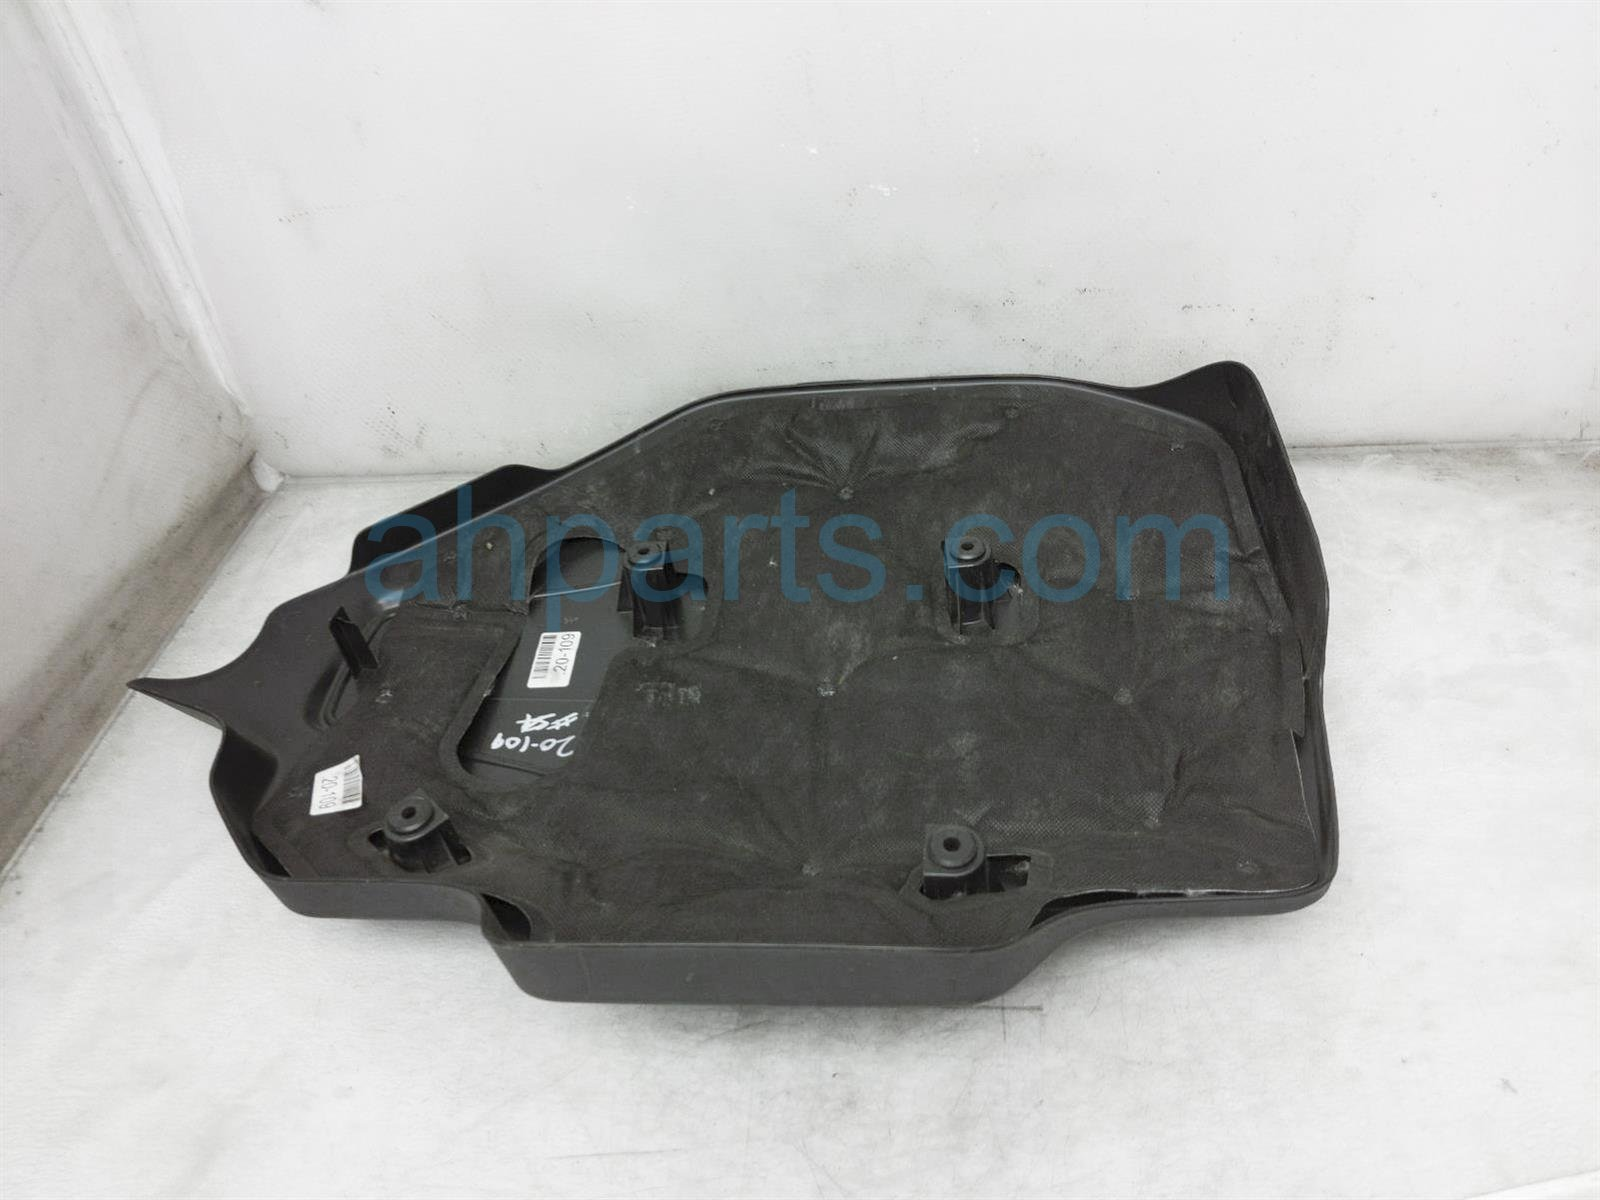 Sold 2019 Honda Pilot Engine Cover 17121 RLV A10 Replacement